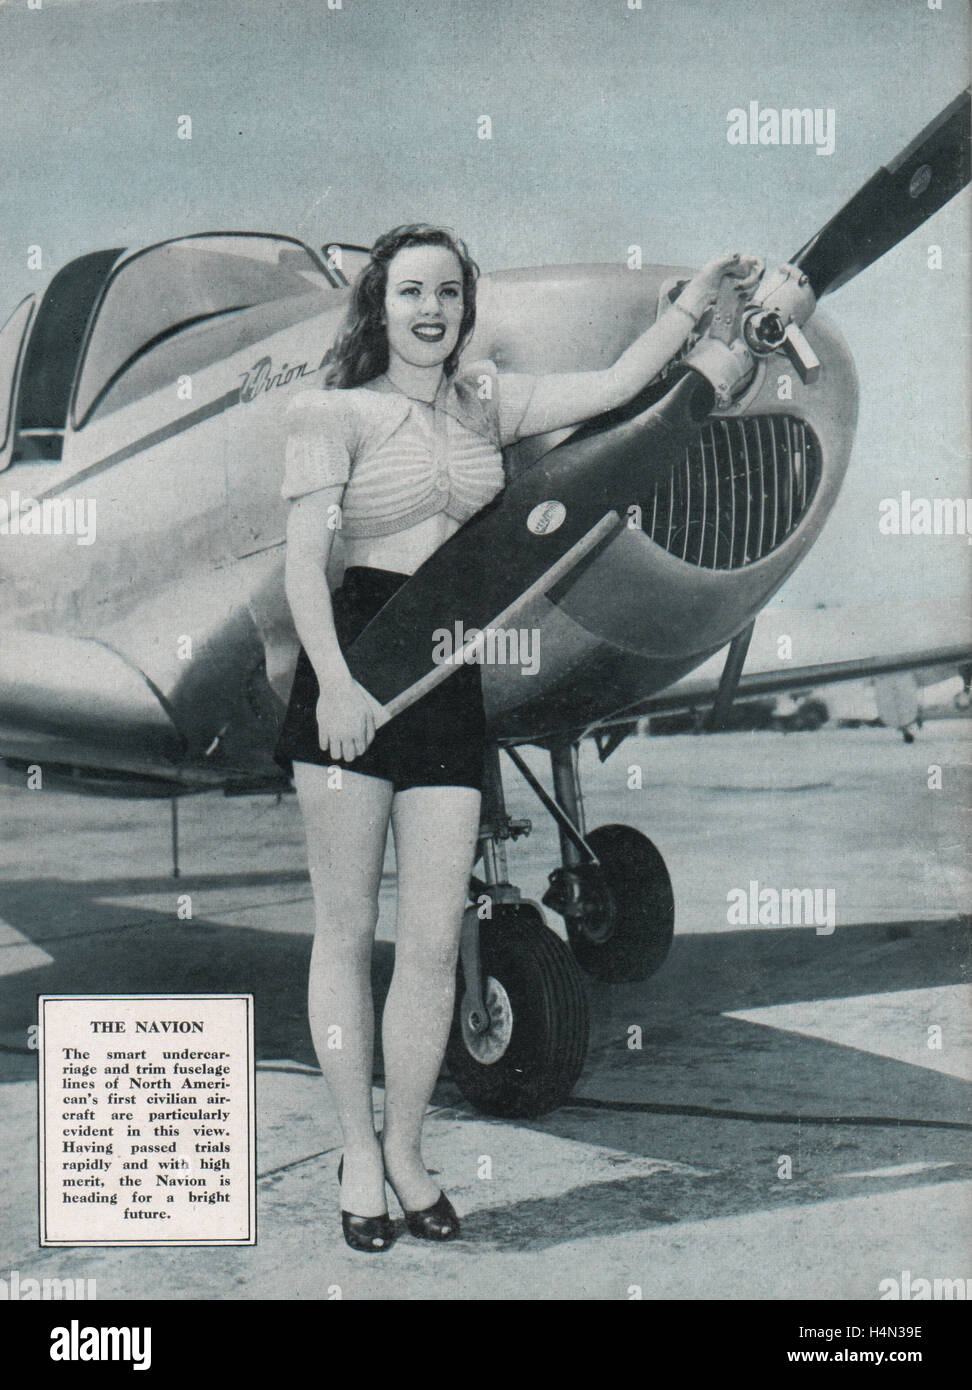 Vintage magazine back cover dated February 1947 showing The Ryan Navion four seat airplane of the 1940s advertised - Stock Image